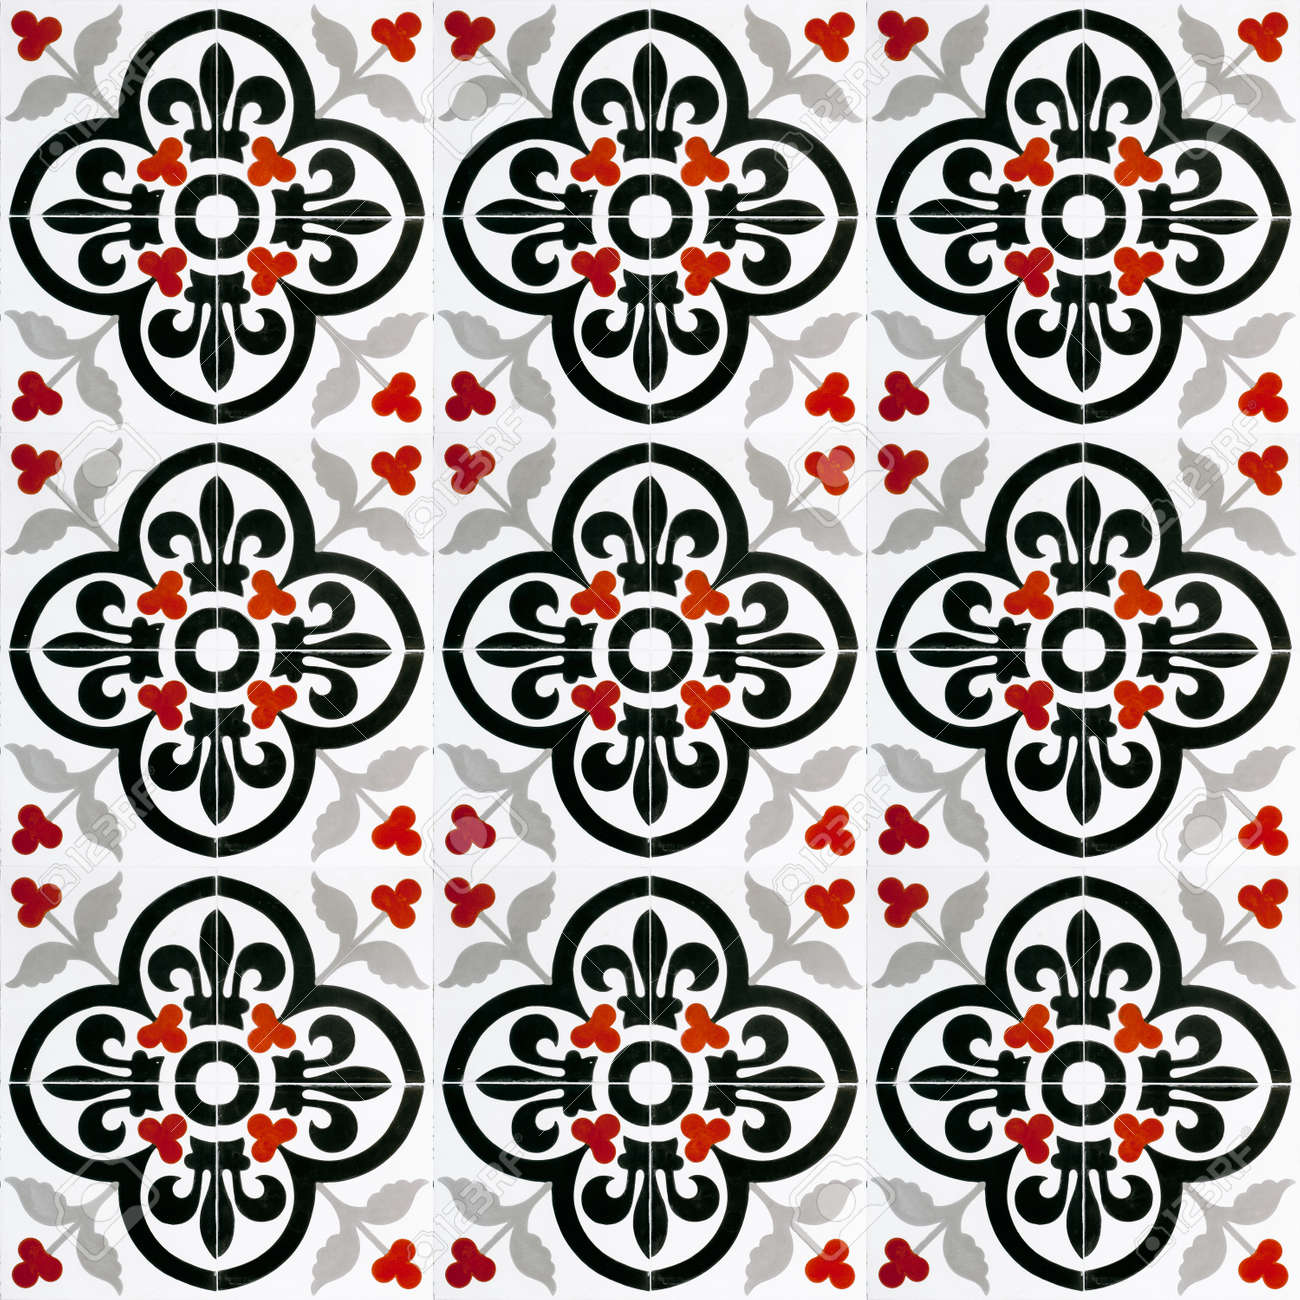 A Seamless Background Image Of Patterned Ceramic Tiles For Your ...